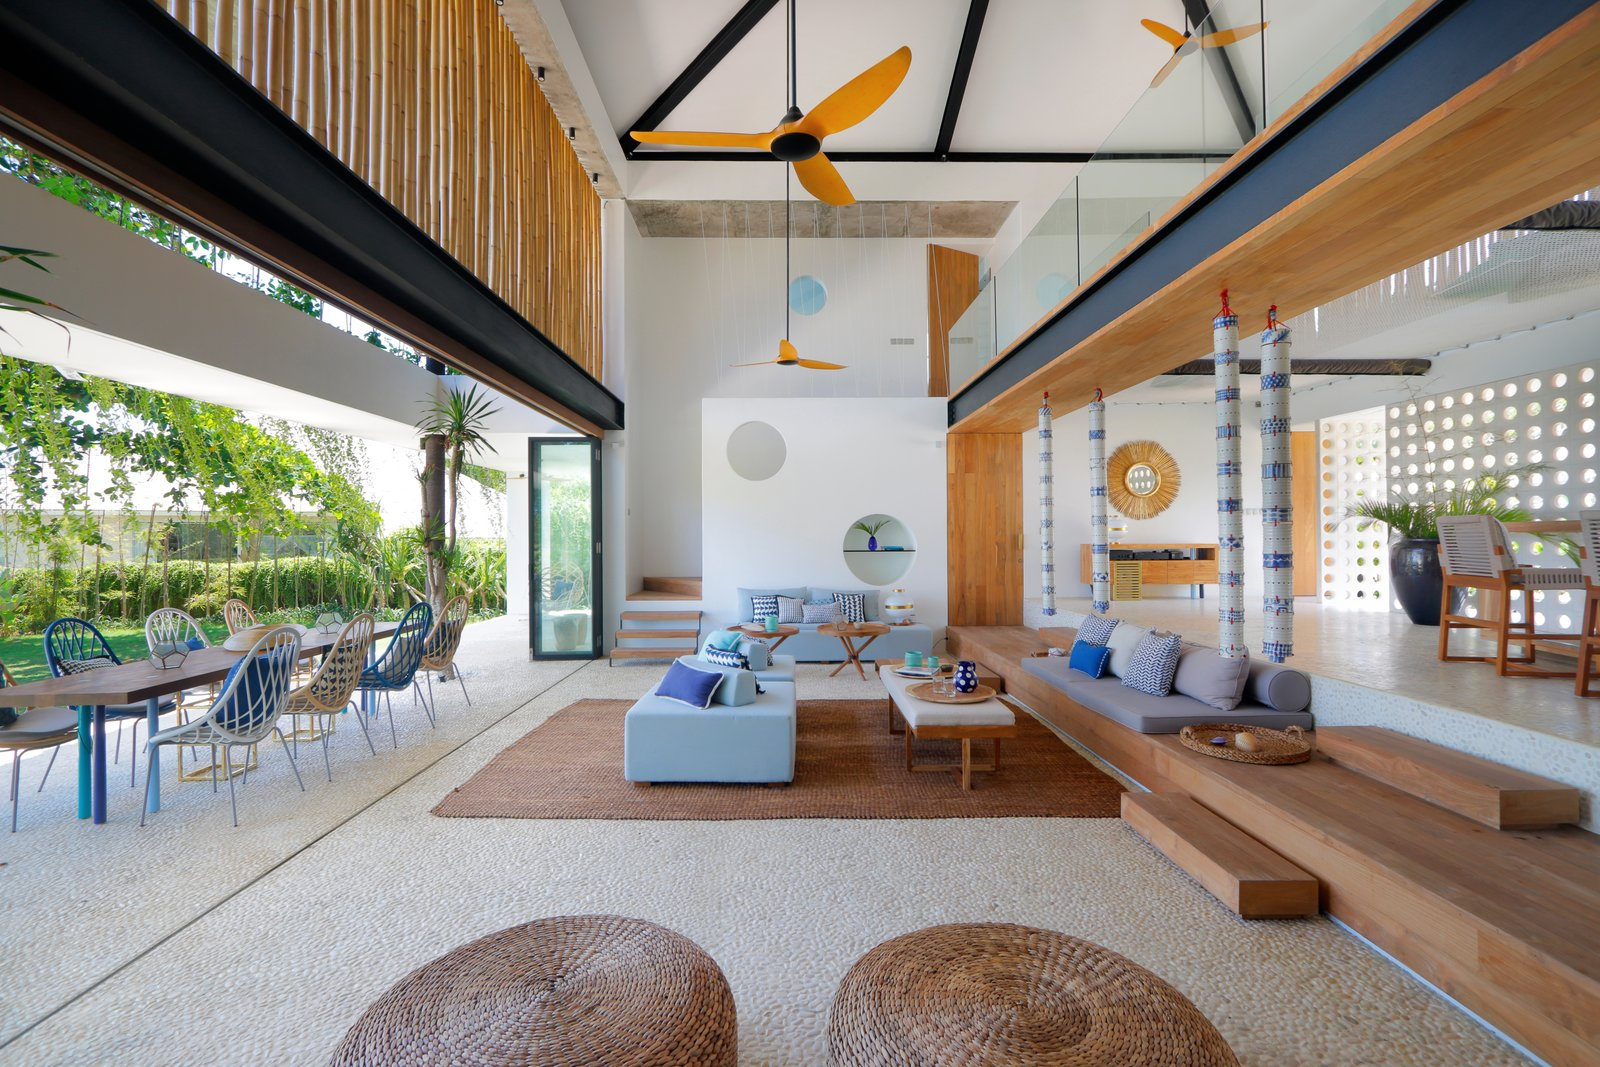 Living Room, Sofa, Chair, Ceiling Lighting, Bench, and Rug Floor  Photo 1 of 19 in Fall in Love With Bali at This Tropical, Modern Retreat